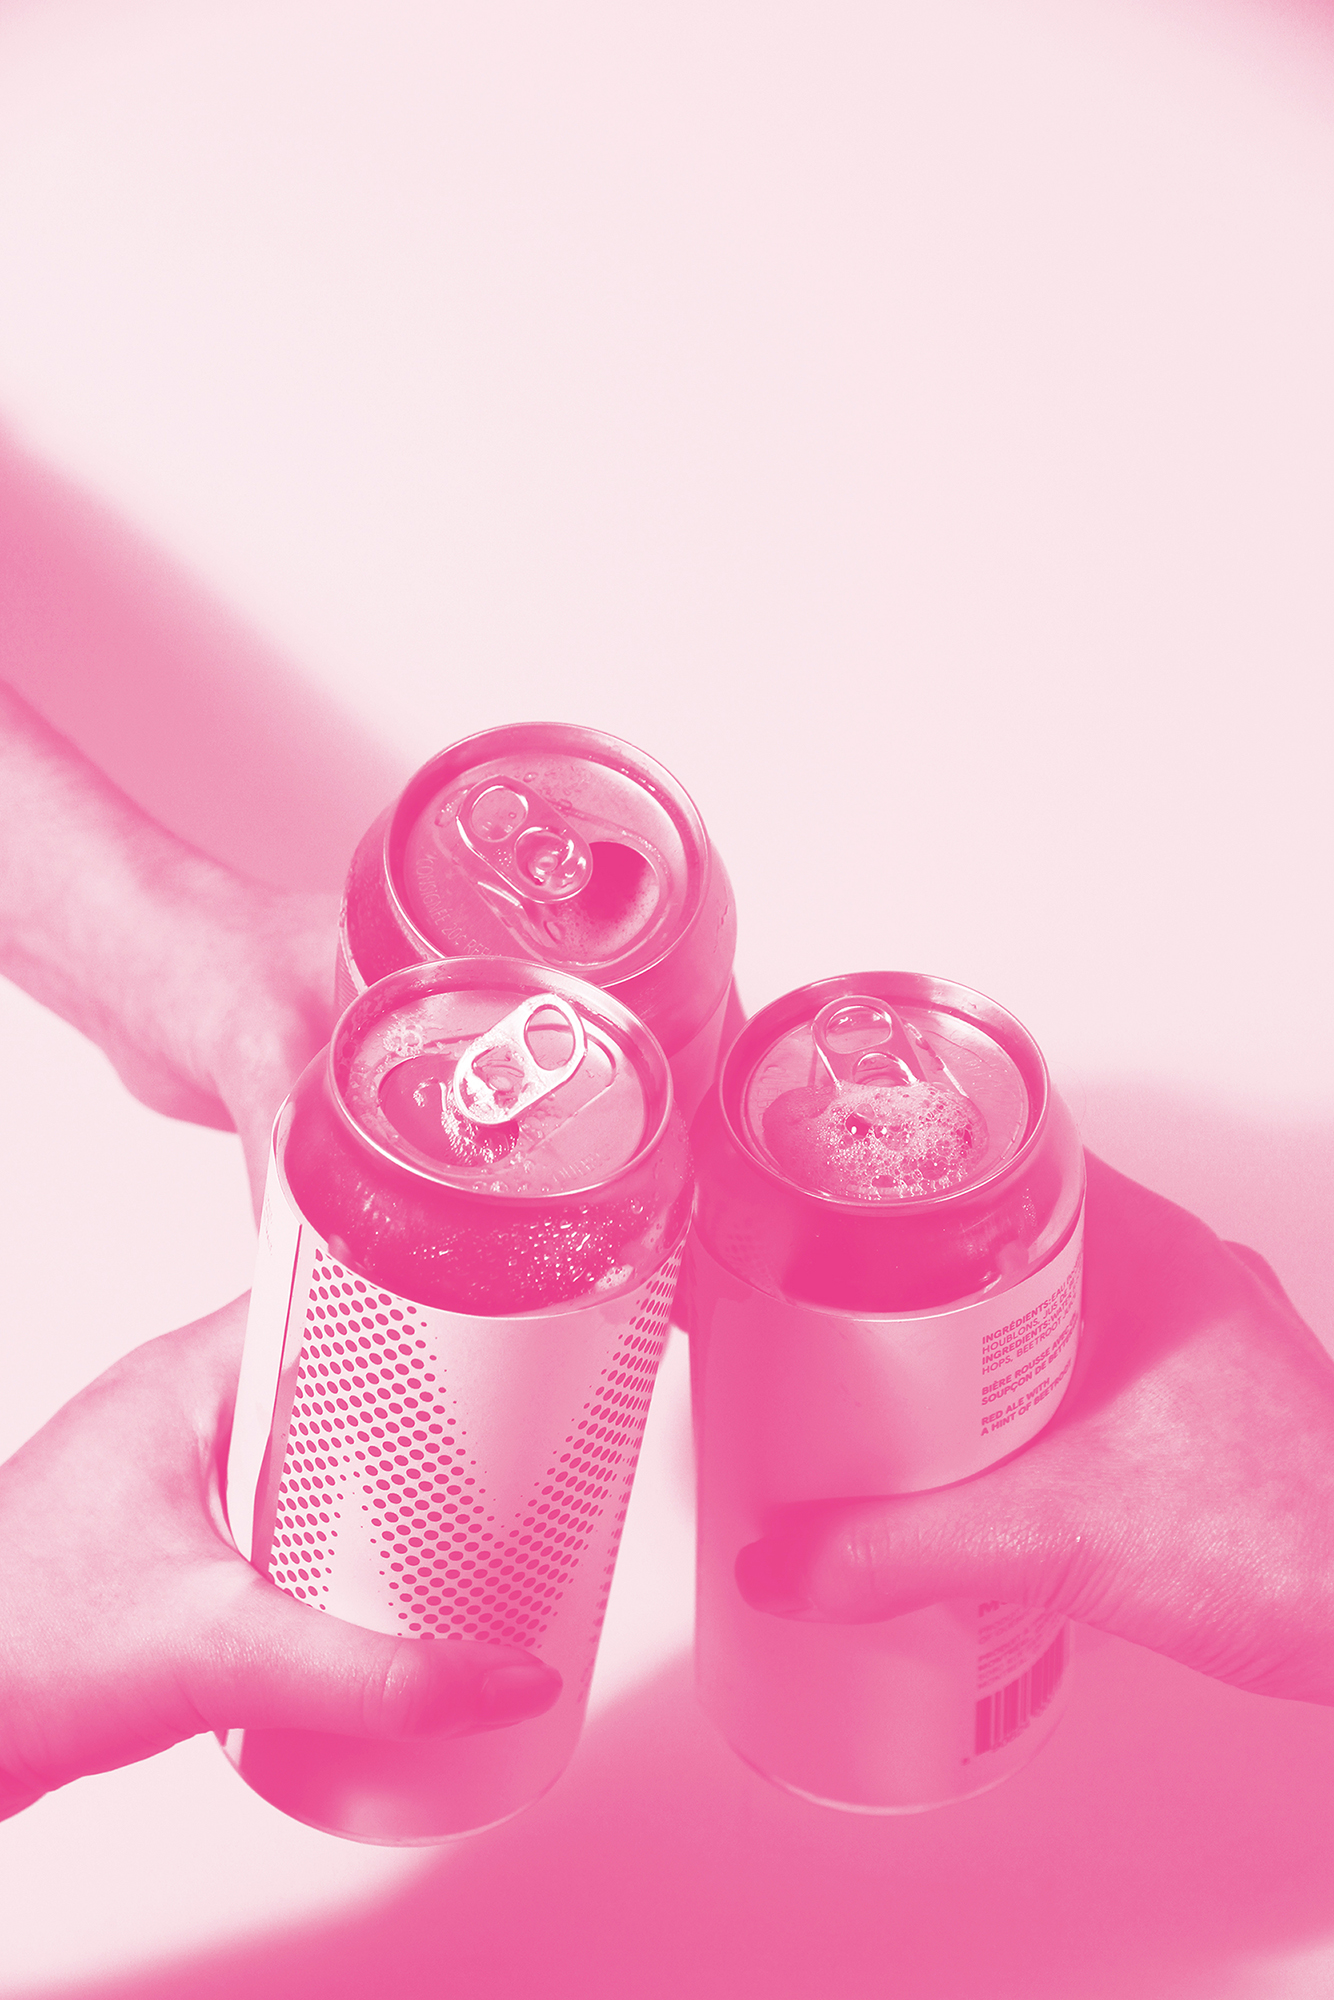 Cheers with 3 beers in magenta duotone